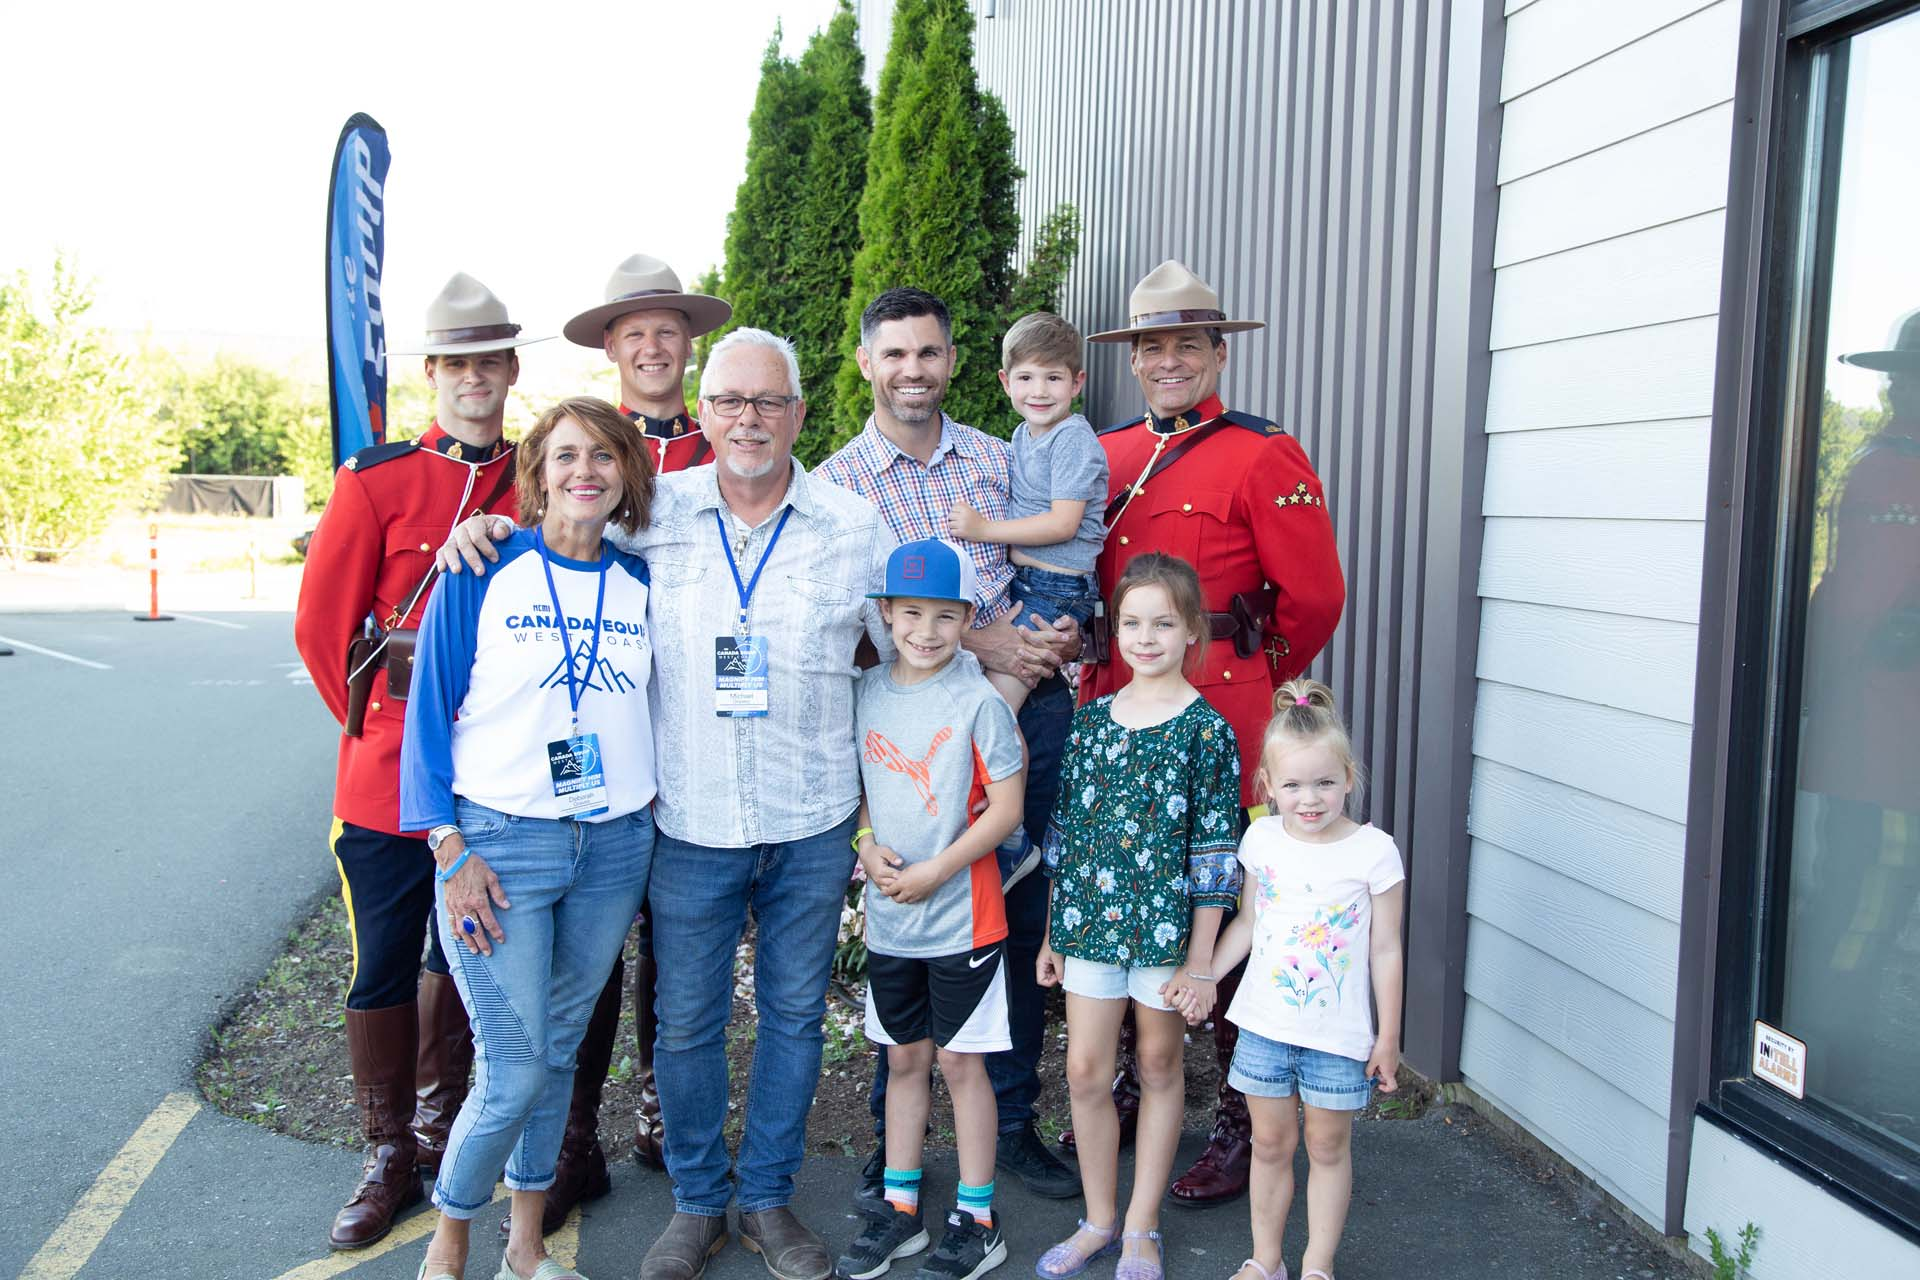 Mountie Photos from Canada Equip 2018